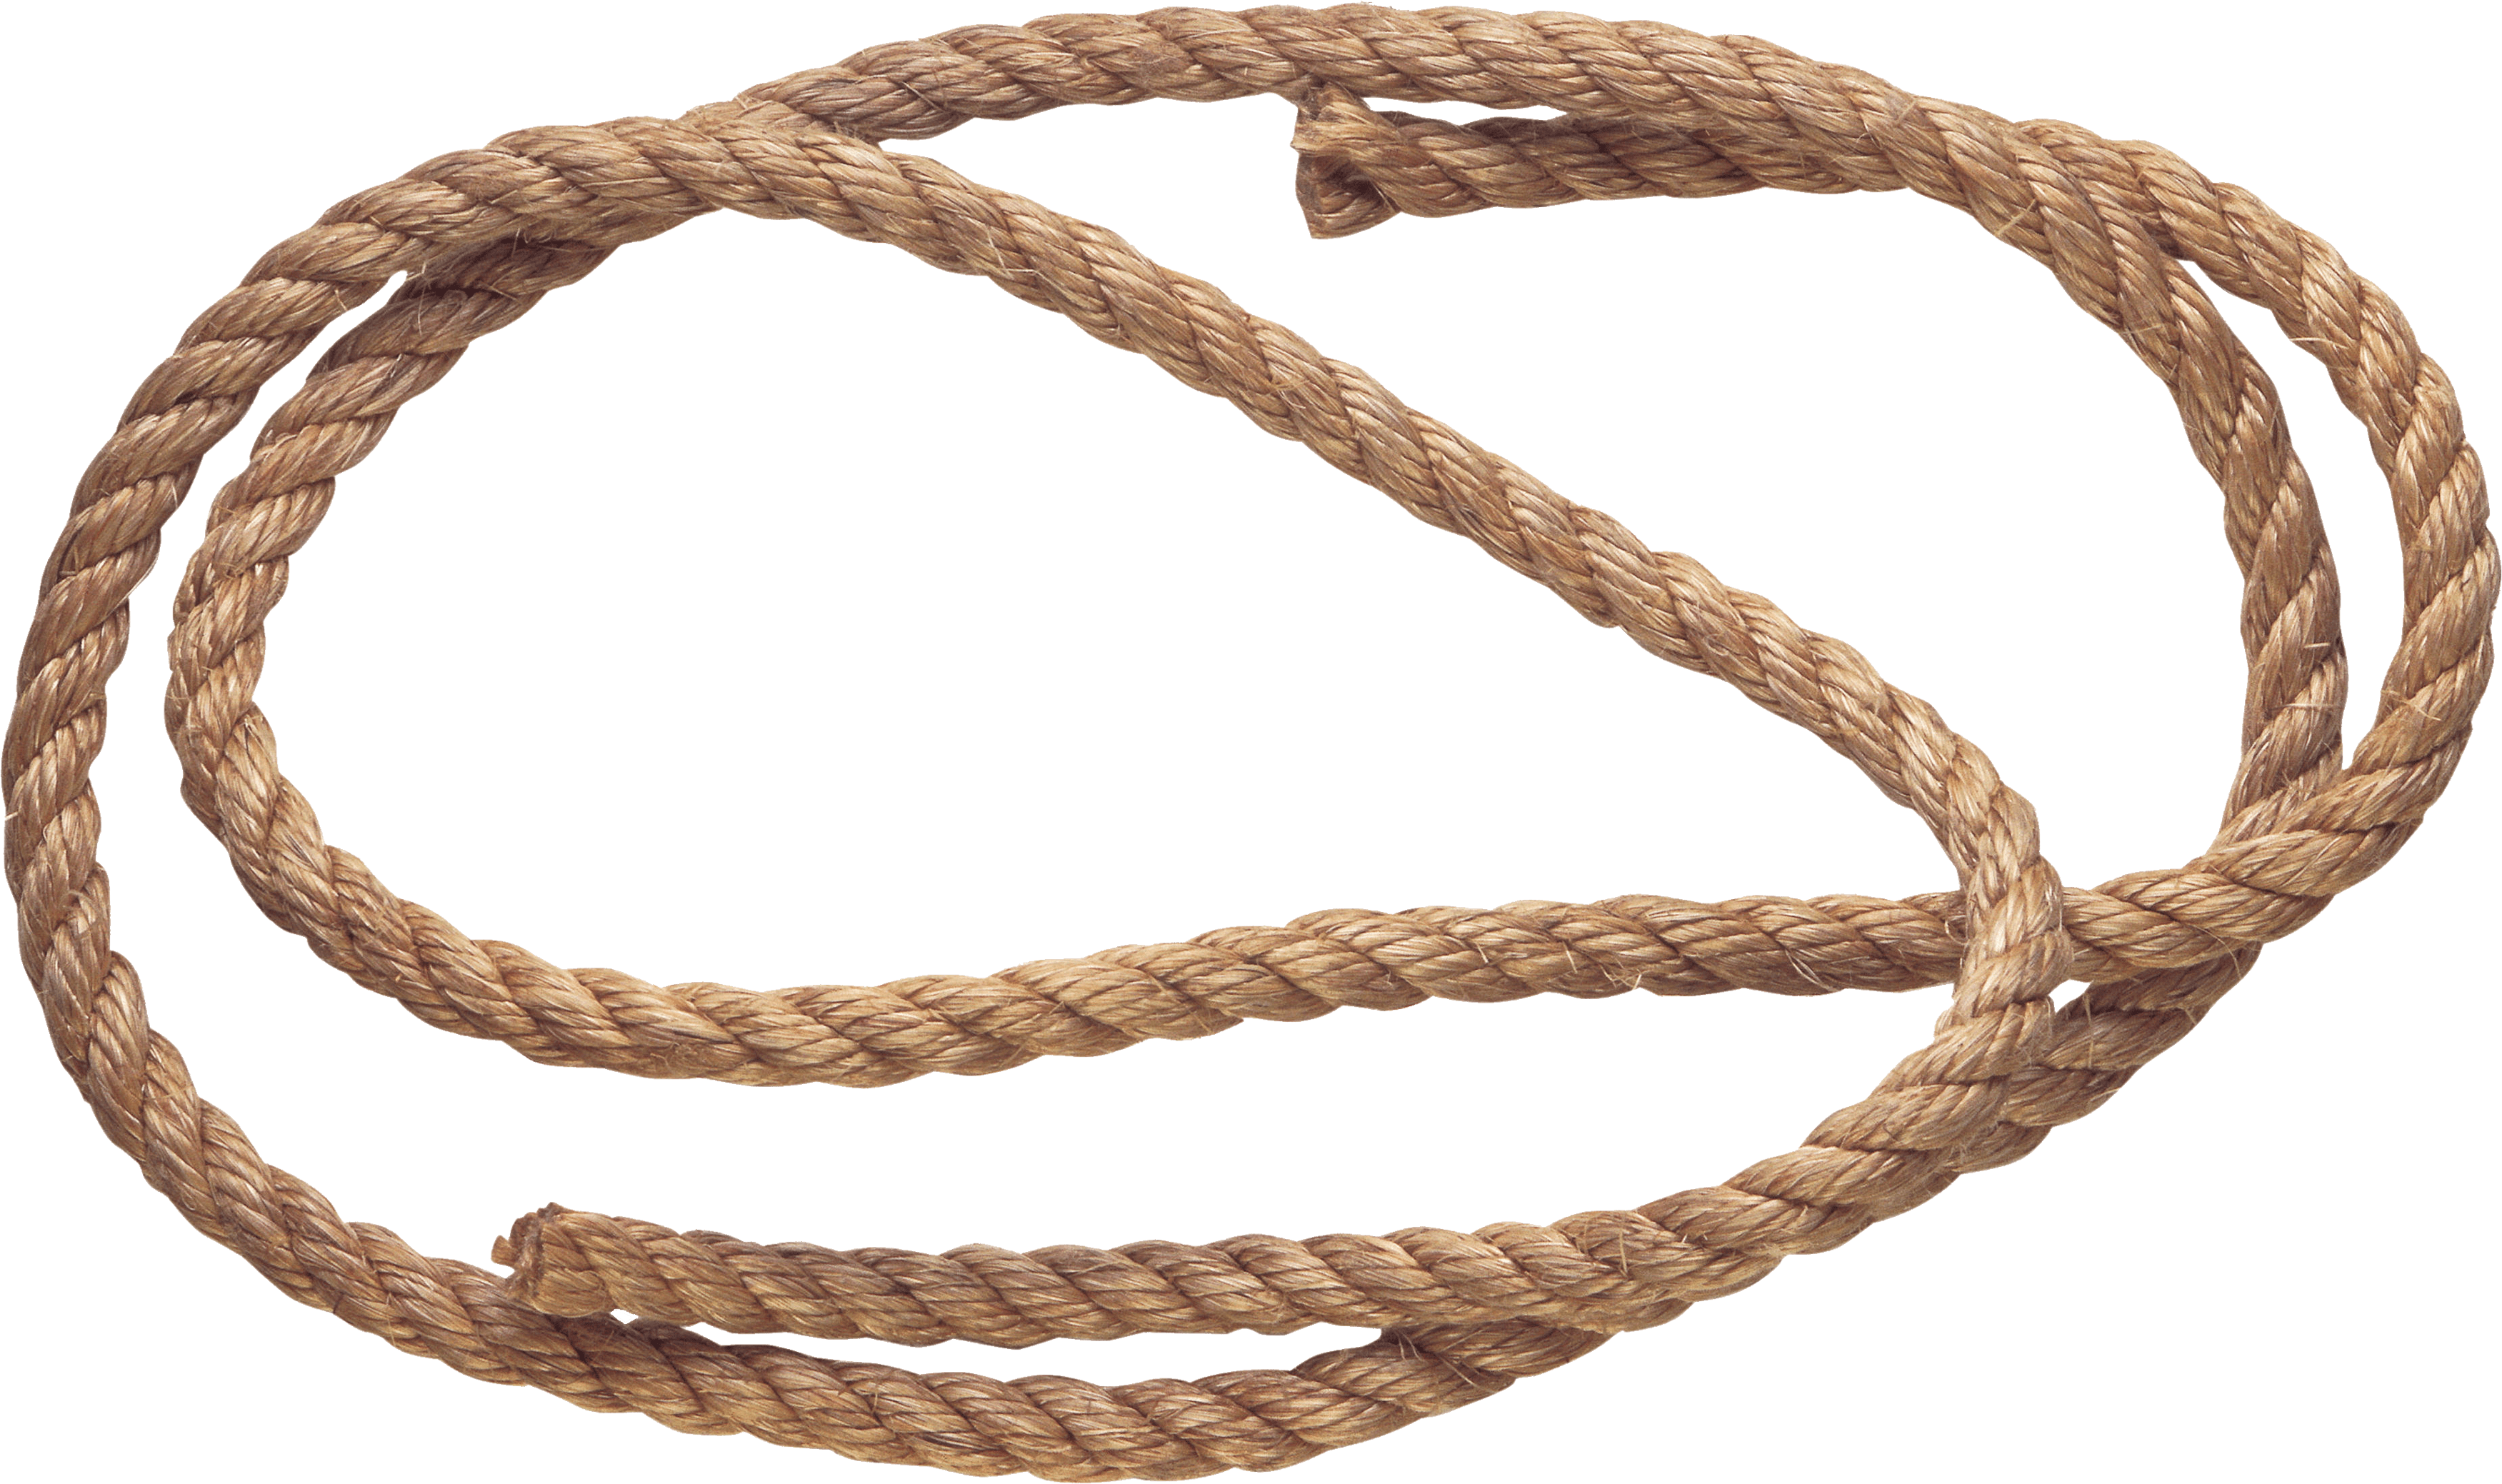 small rope hd transparent png stickpng clipart operation game clipart operation game